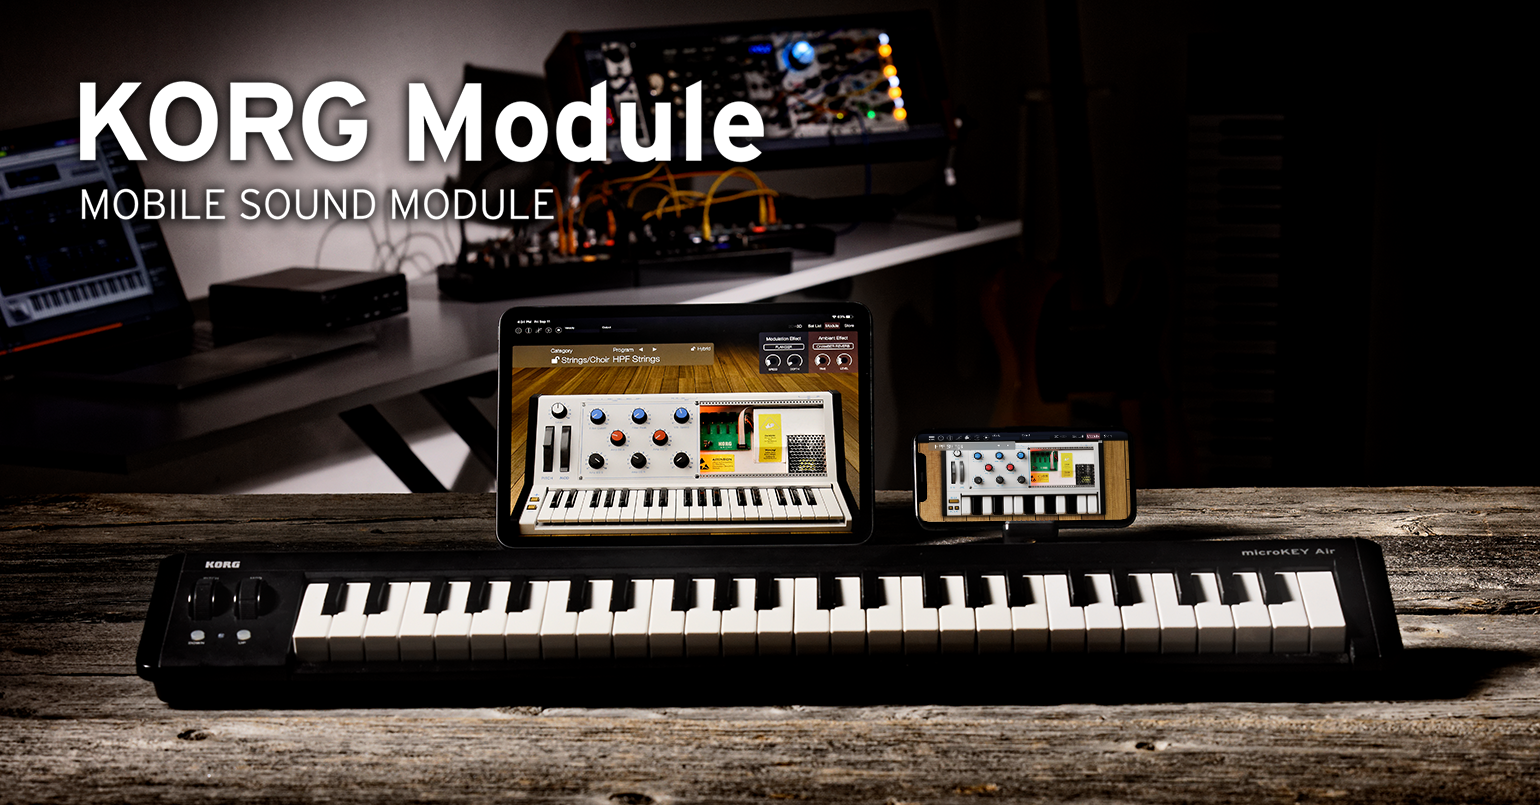 News Version 4 Of Korg Module Is Now Available With A New Hybrid Digital Synthesizer And Auv3 Support Limited Time Sale Korg Usa